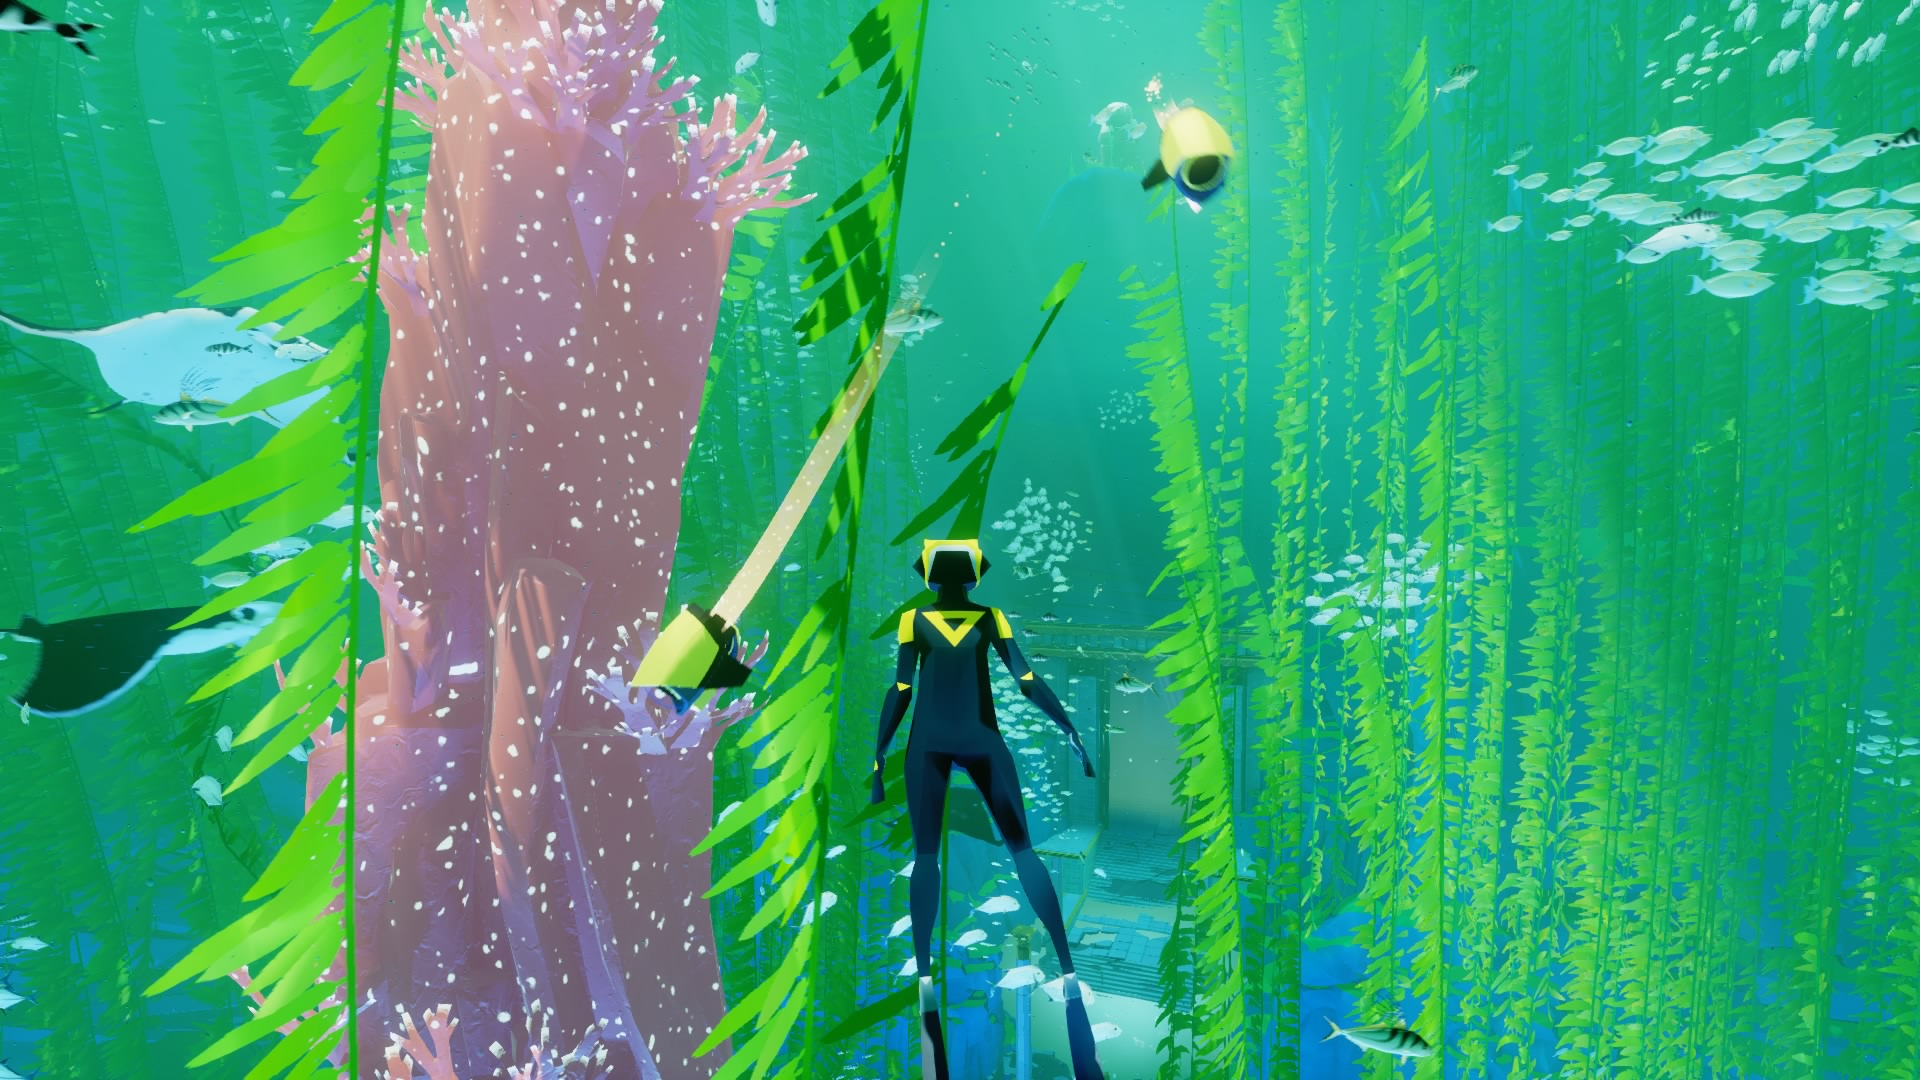 Ahhh, another day with the kelp and the mantas